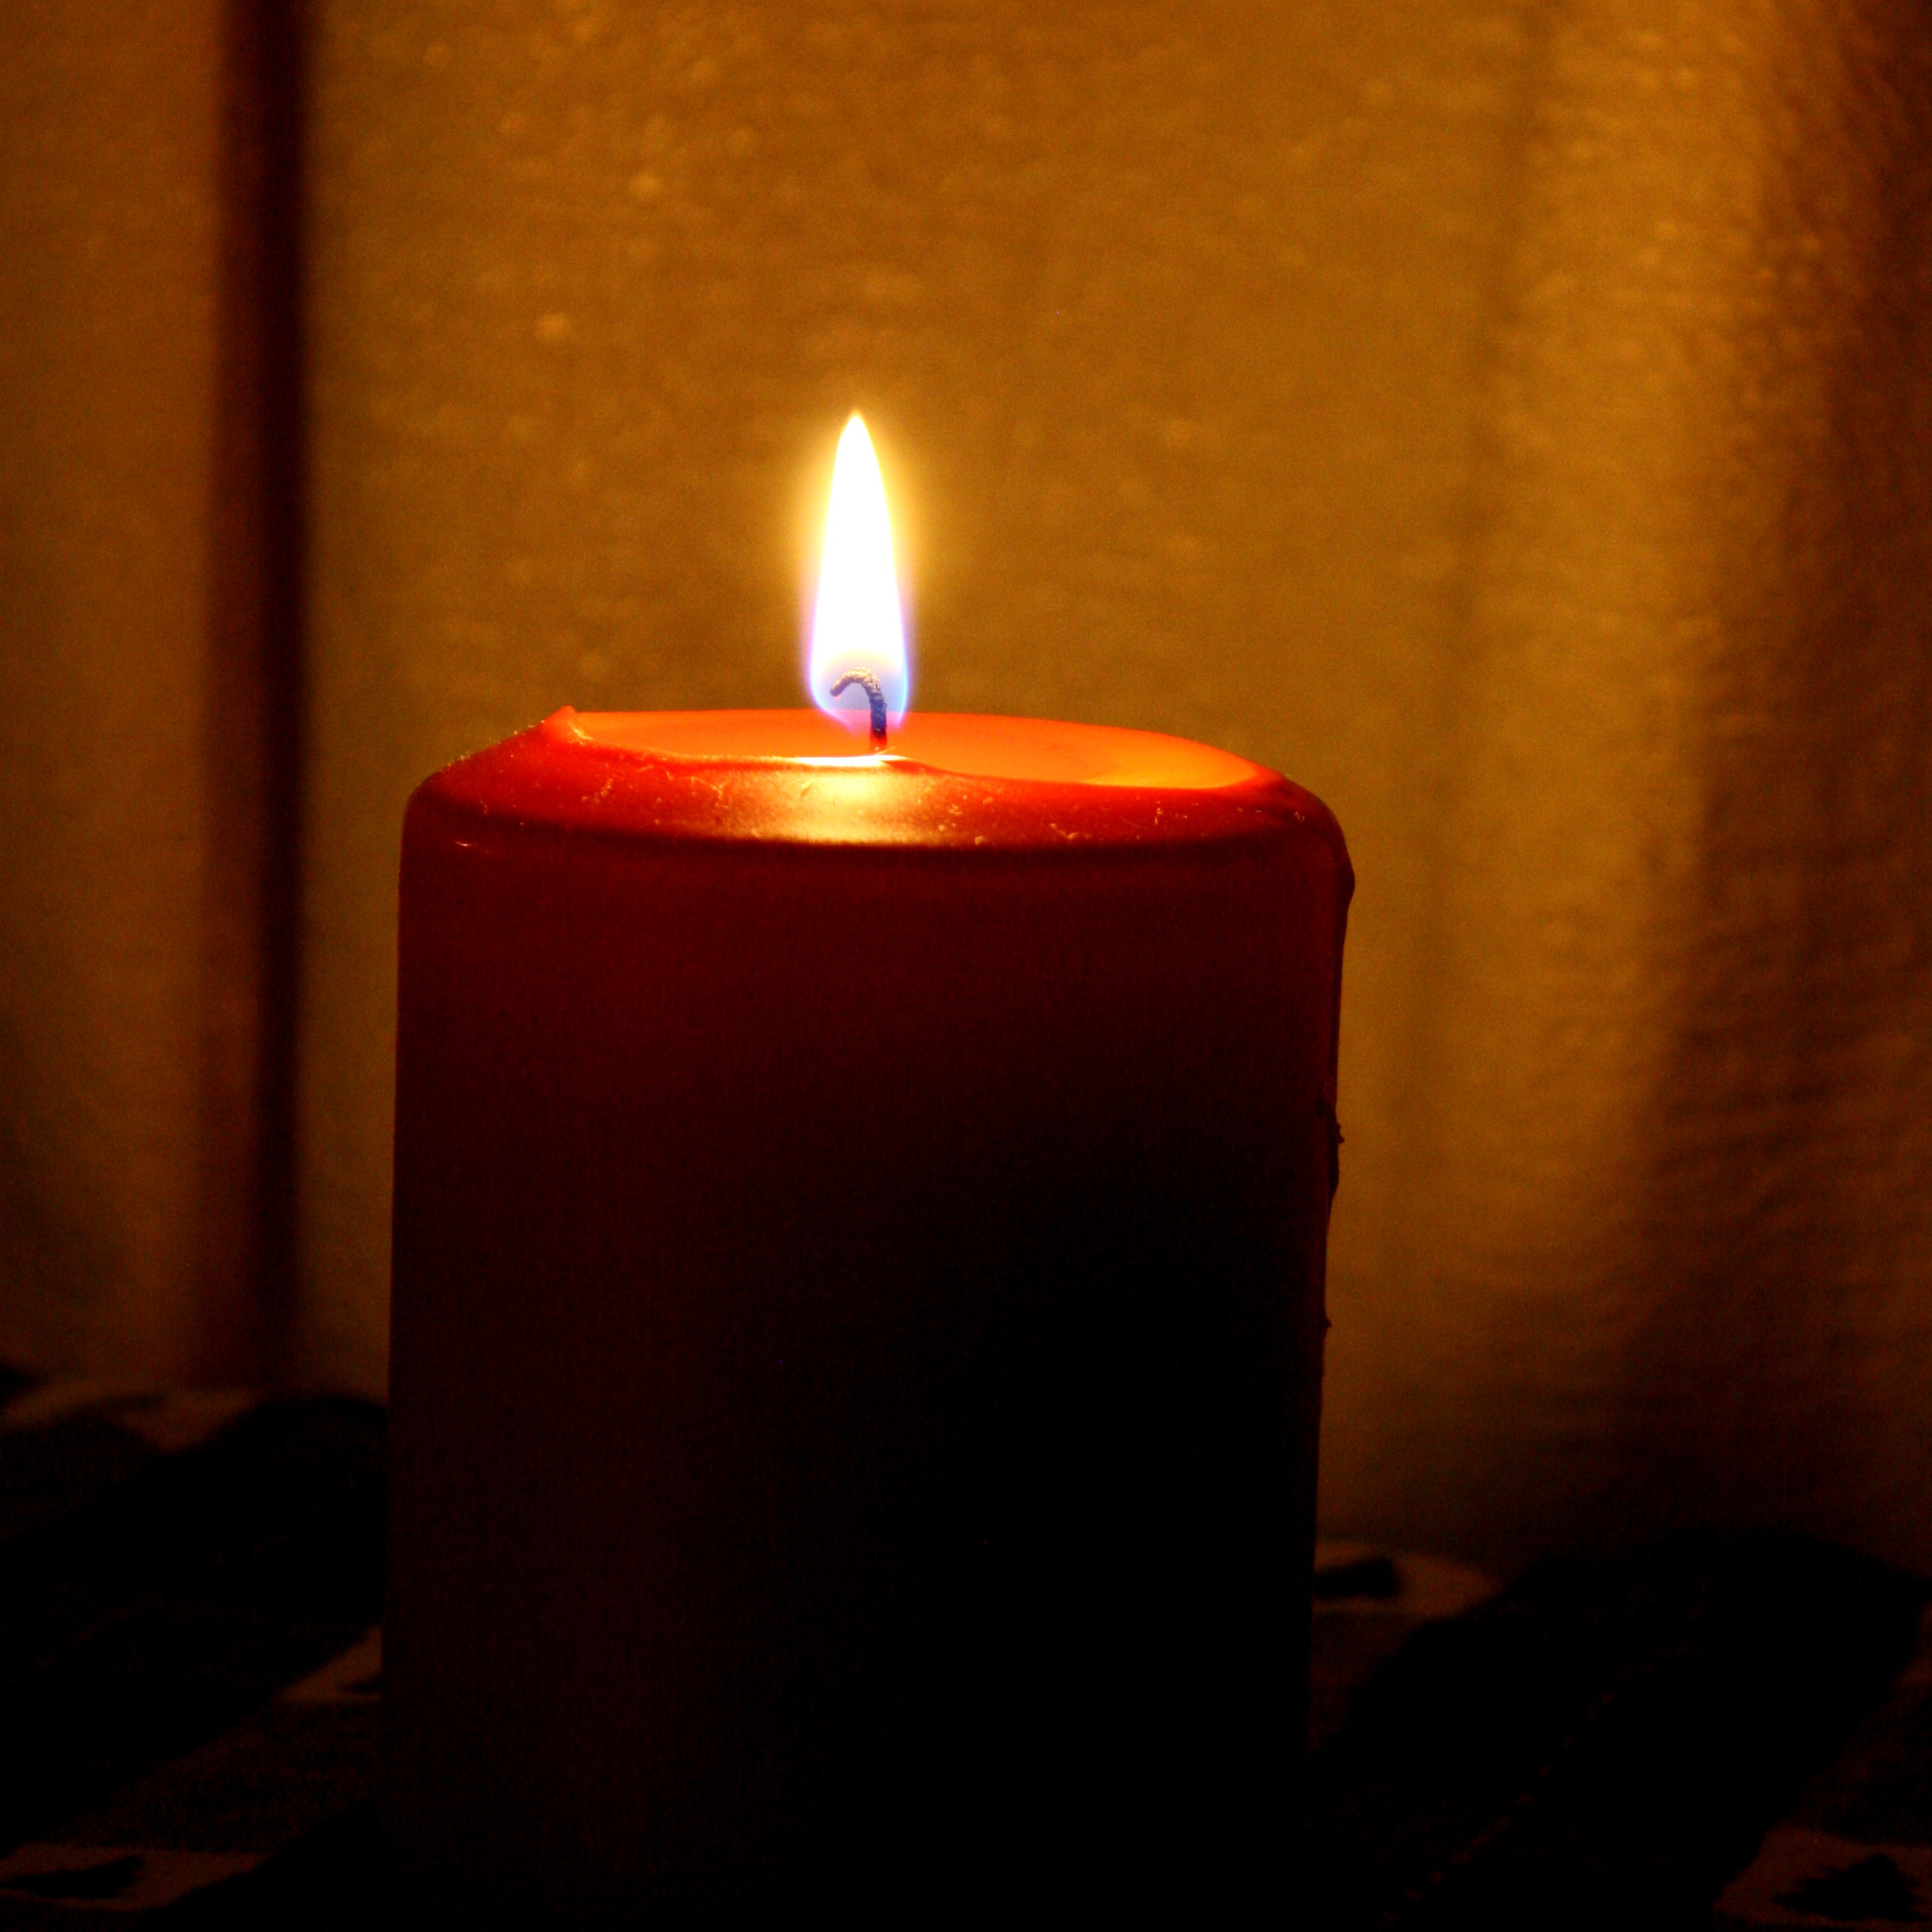 Red Burning Candle Picture | Free Photograph | Photos ...